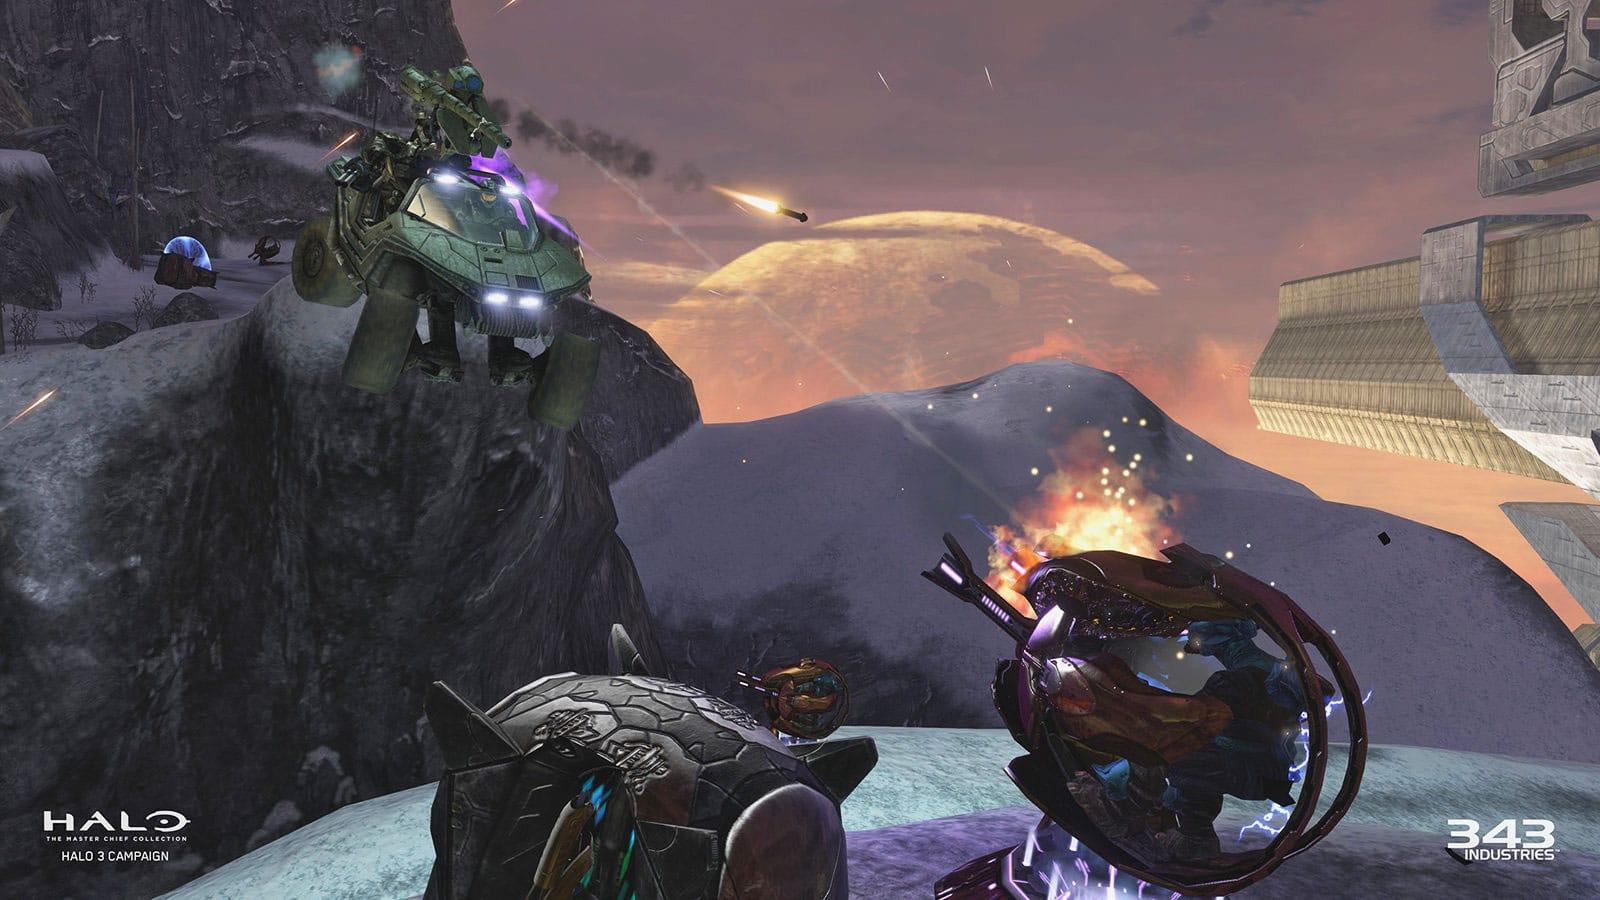 Halo: The Master Chief Collection' heads to PC with 'Reach' included |  Engadget